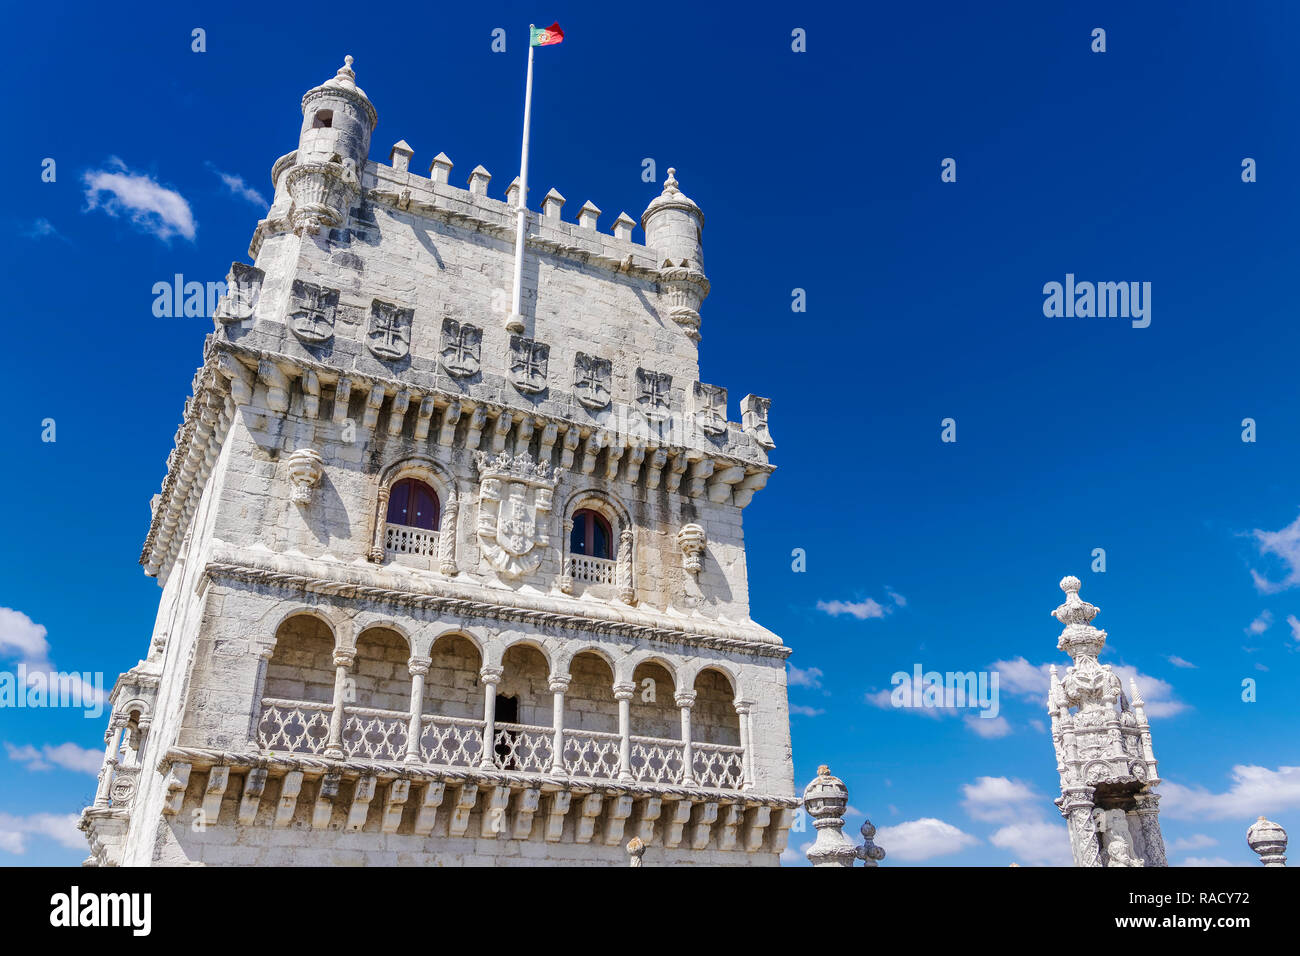 Fortified floors and terrace view of the Torre de Belem (Belem Tower), medieval defensive tower on the bank of Tagus River, UNESCO, Lisbon, Portugal Stock Photo